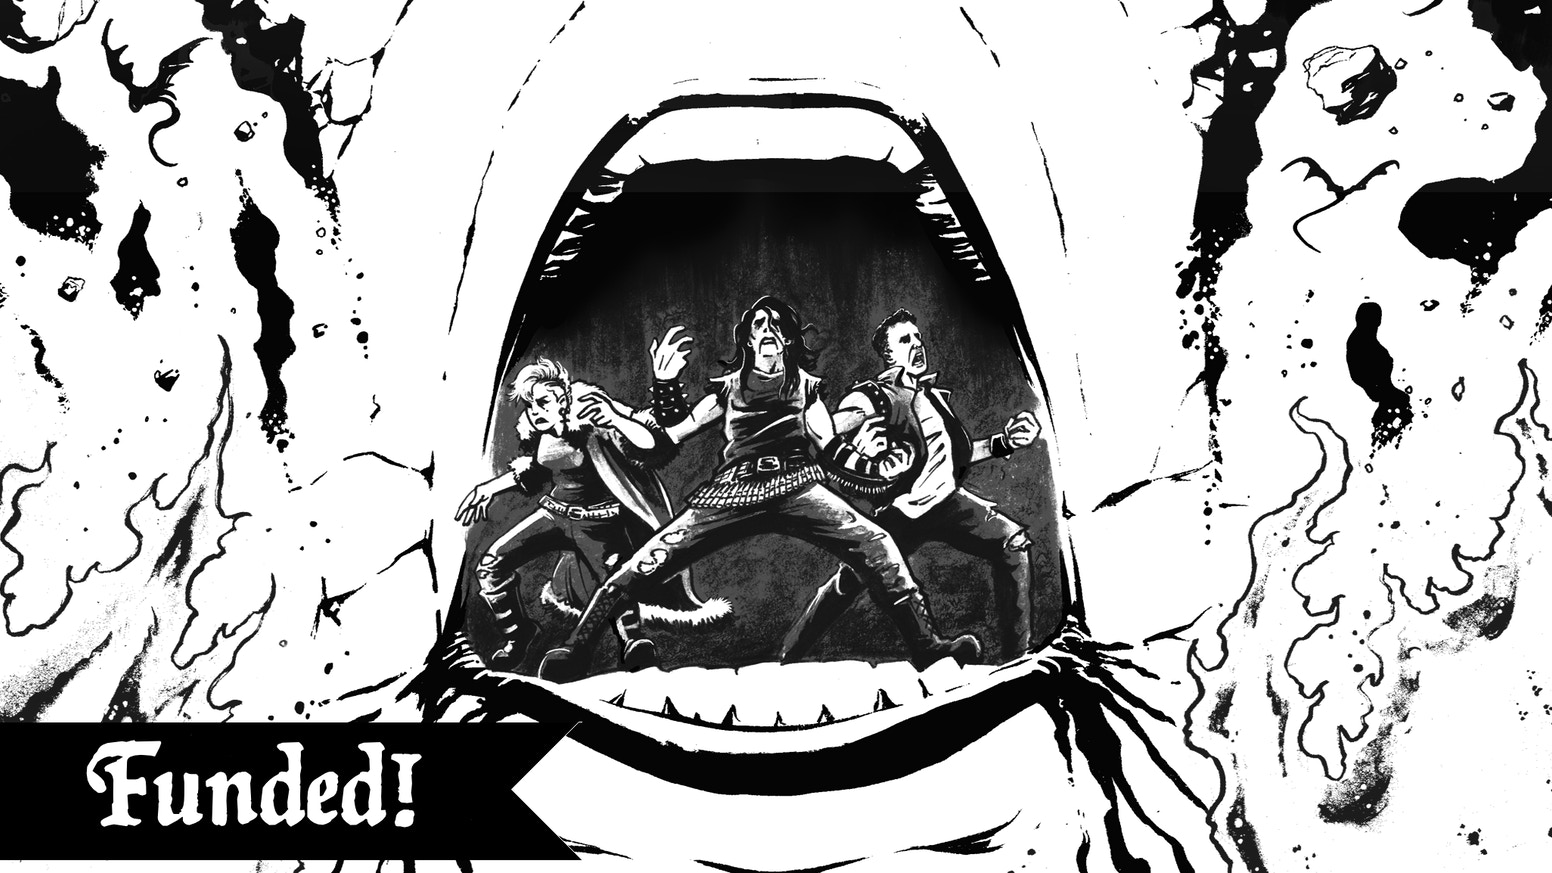 A B&W one-shot comic about a black metal band who accidentally open the gates of Hell.